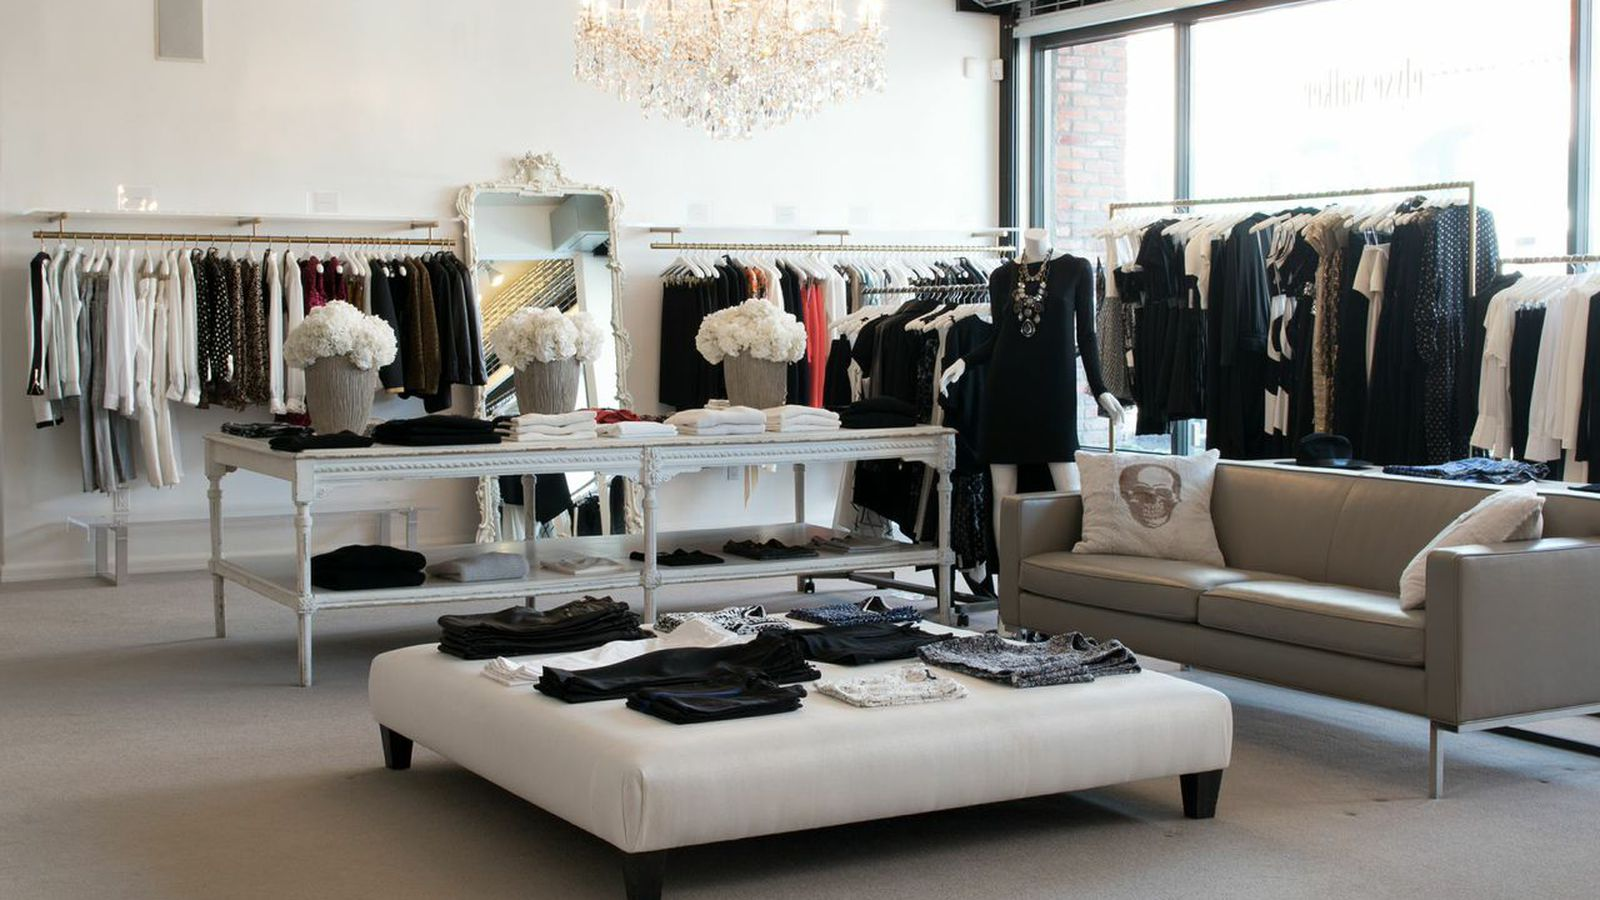 The List: The 10 Best Fashion Boutiques in Toronto Best fashion boutiques toronto